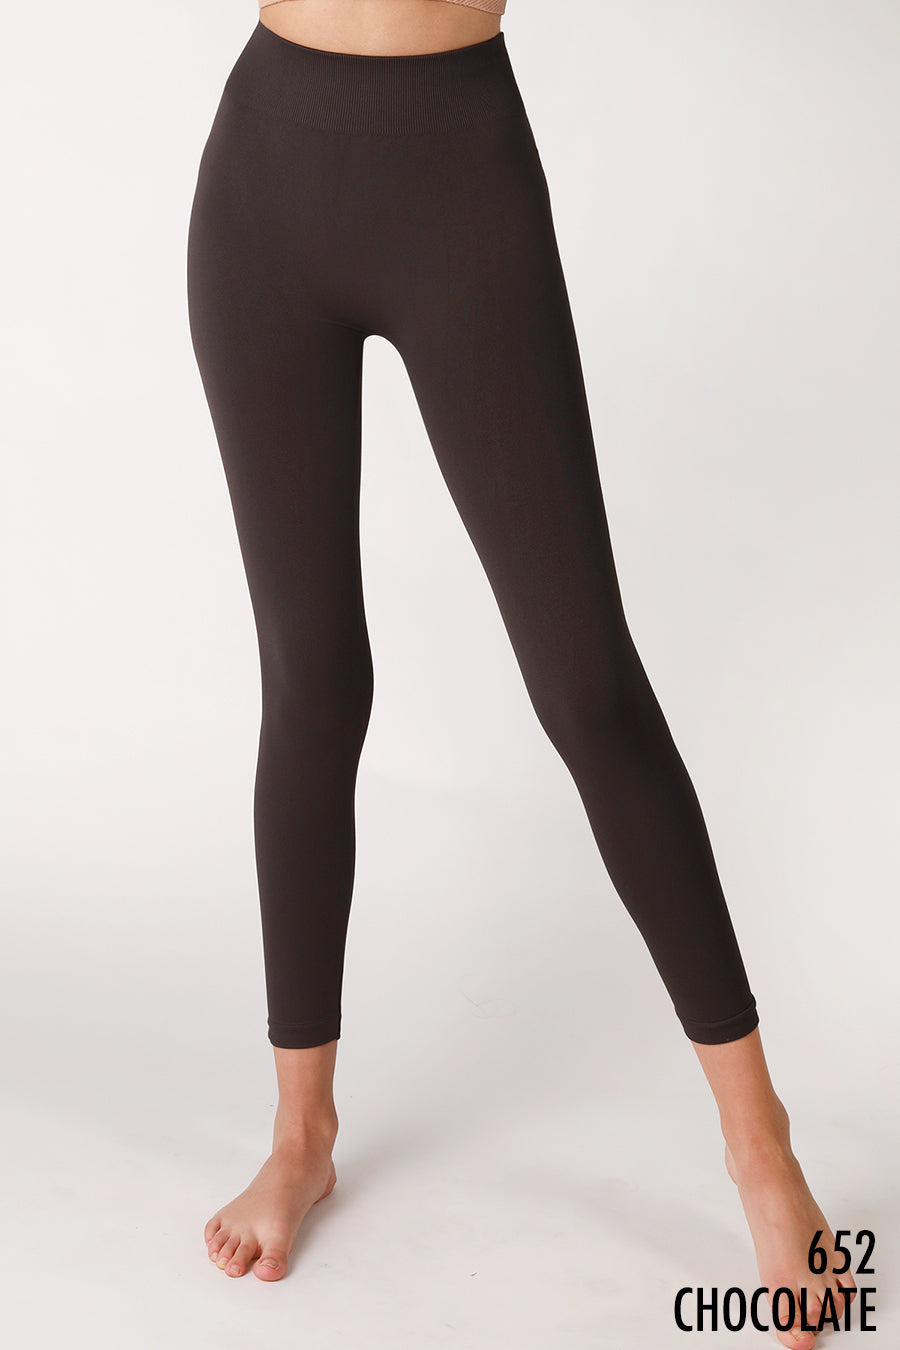 Niki Biki High Waisted Leggings